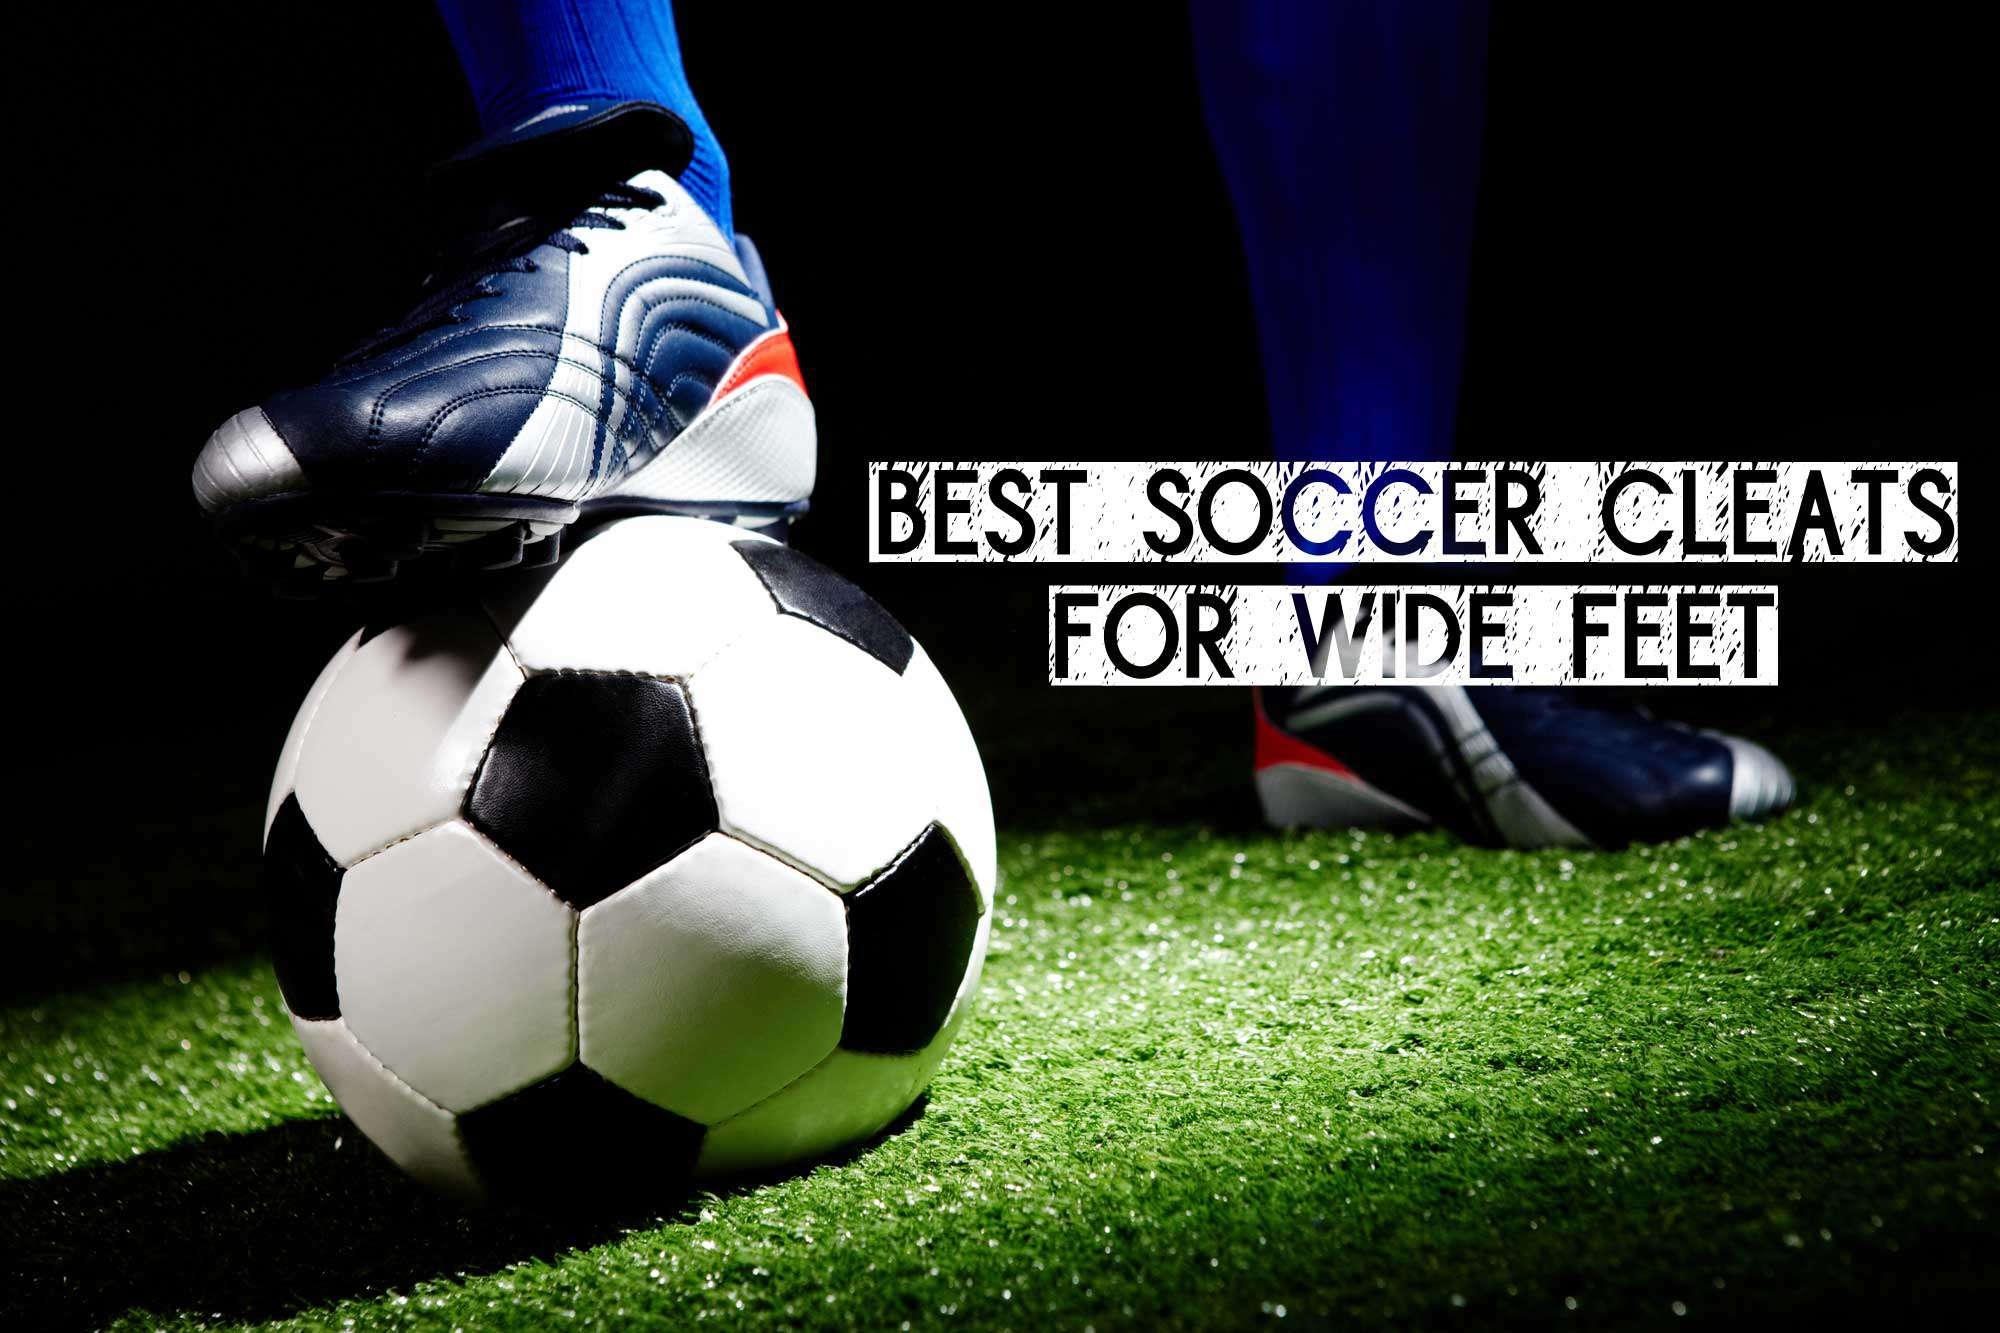 Best Soccer Shoes For Wide Feet